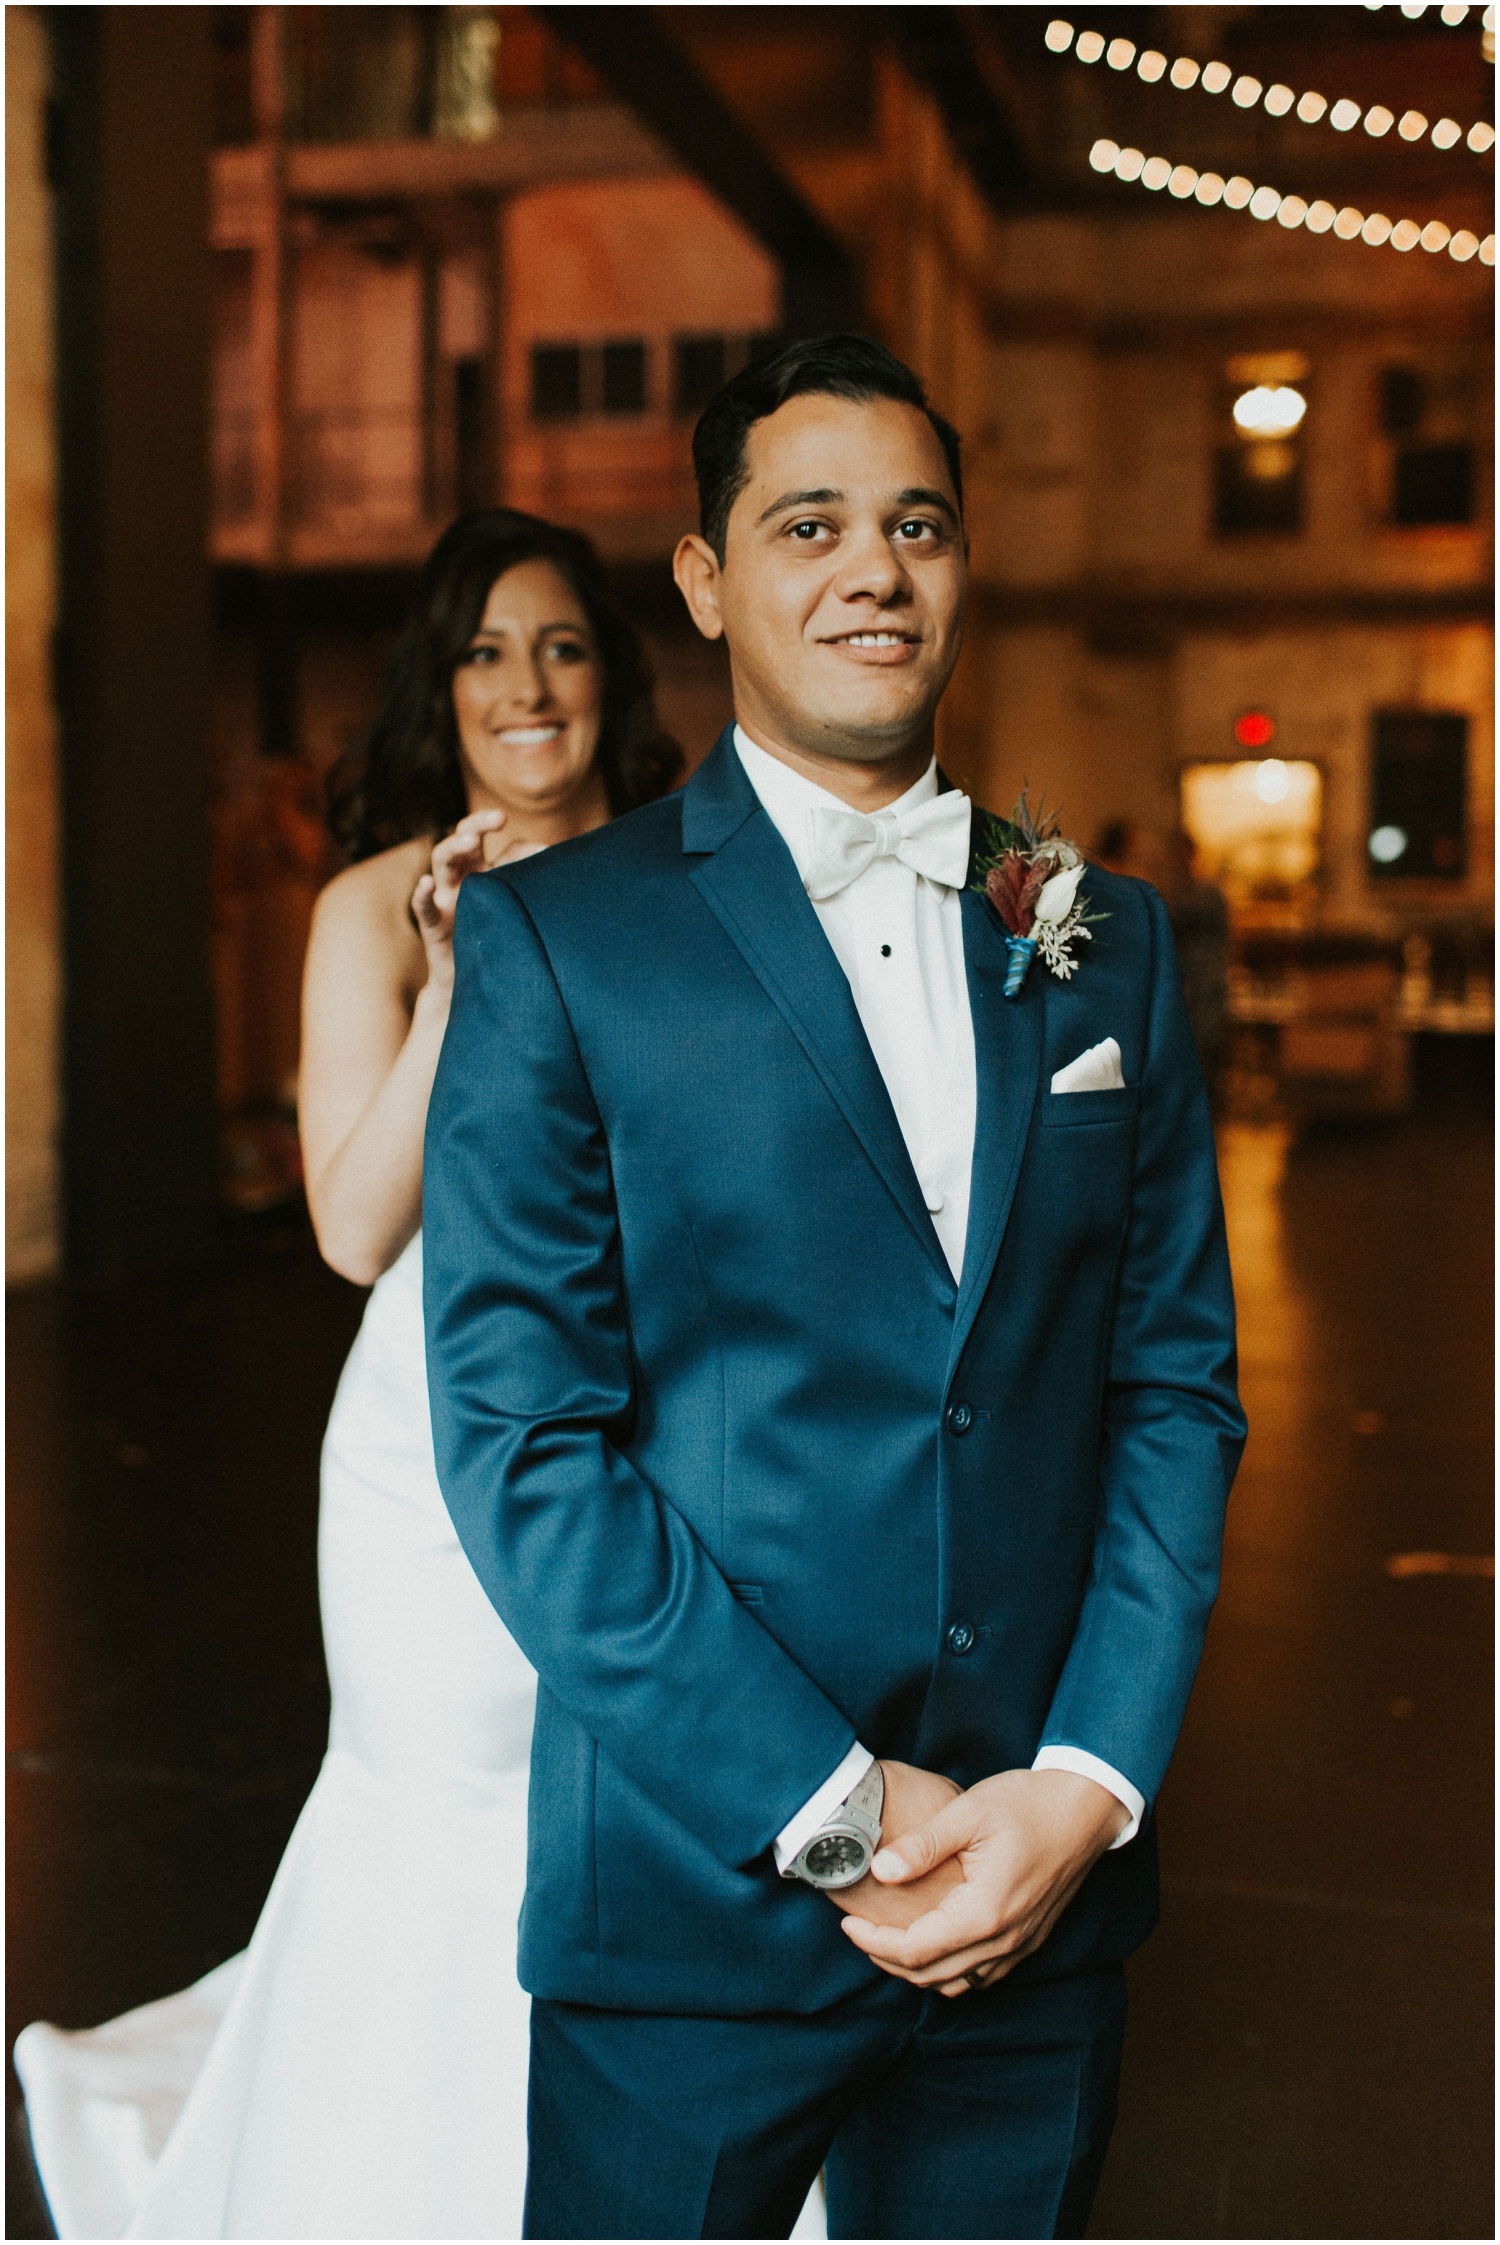 Bride and Groom's First Look at their MN Wedding